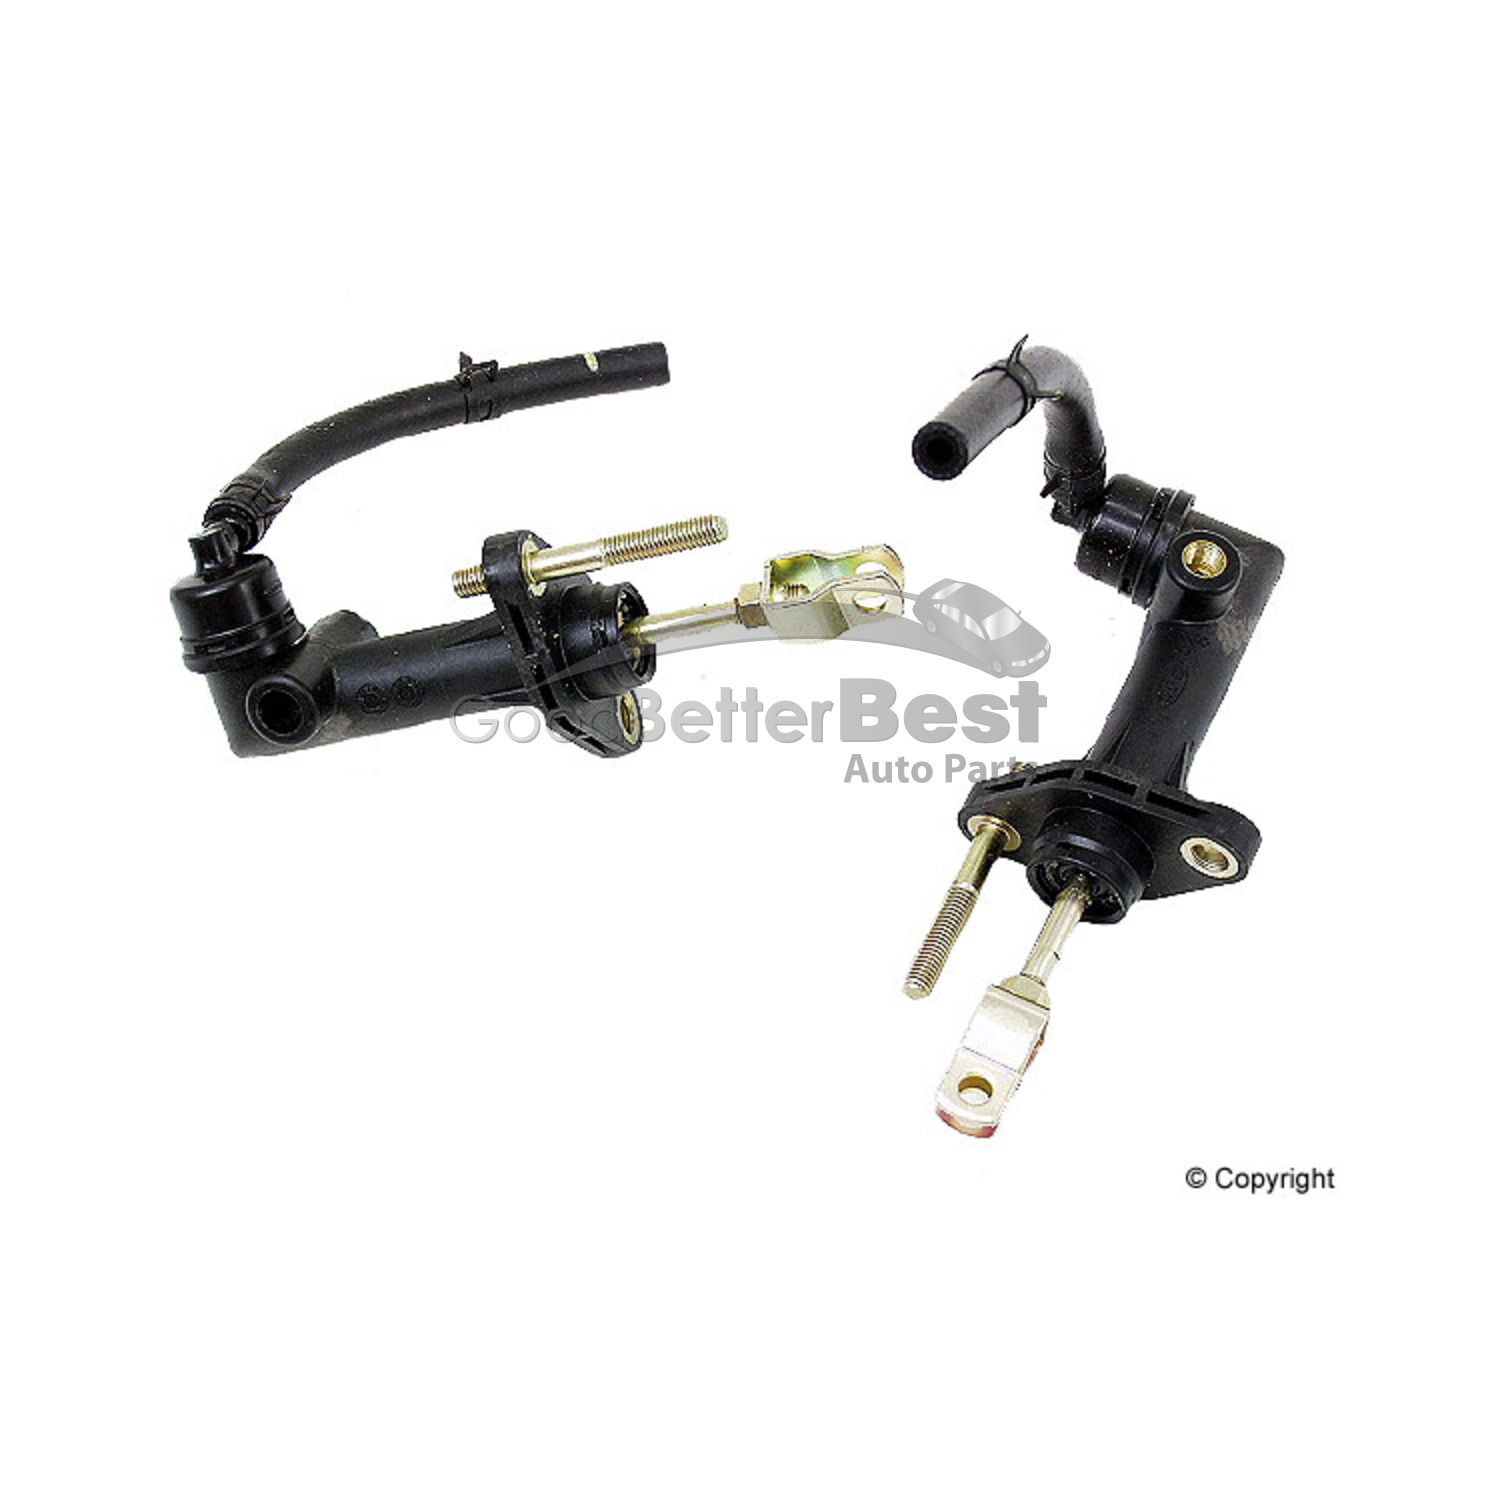 One New Genuine Clutch Master Cylinder 0k01a A For Kia